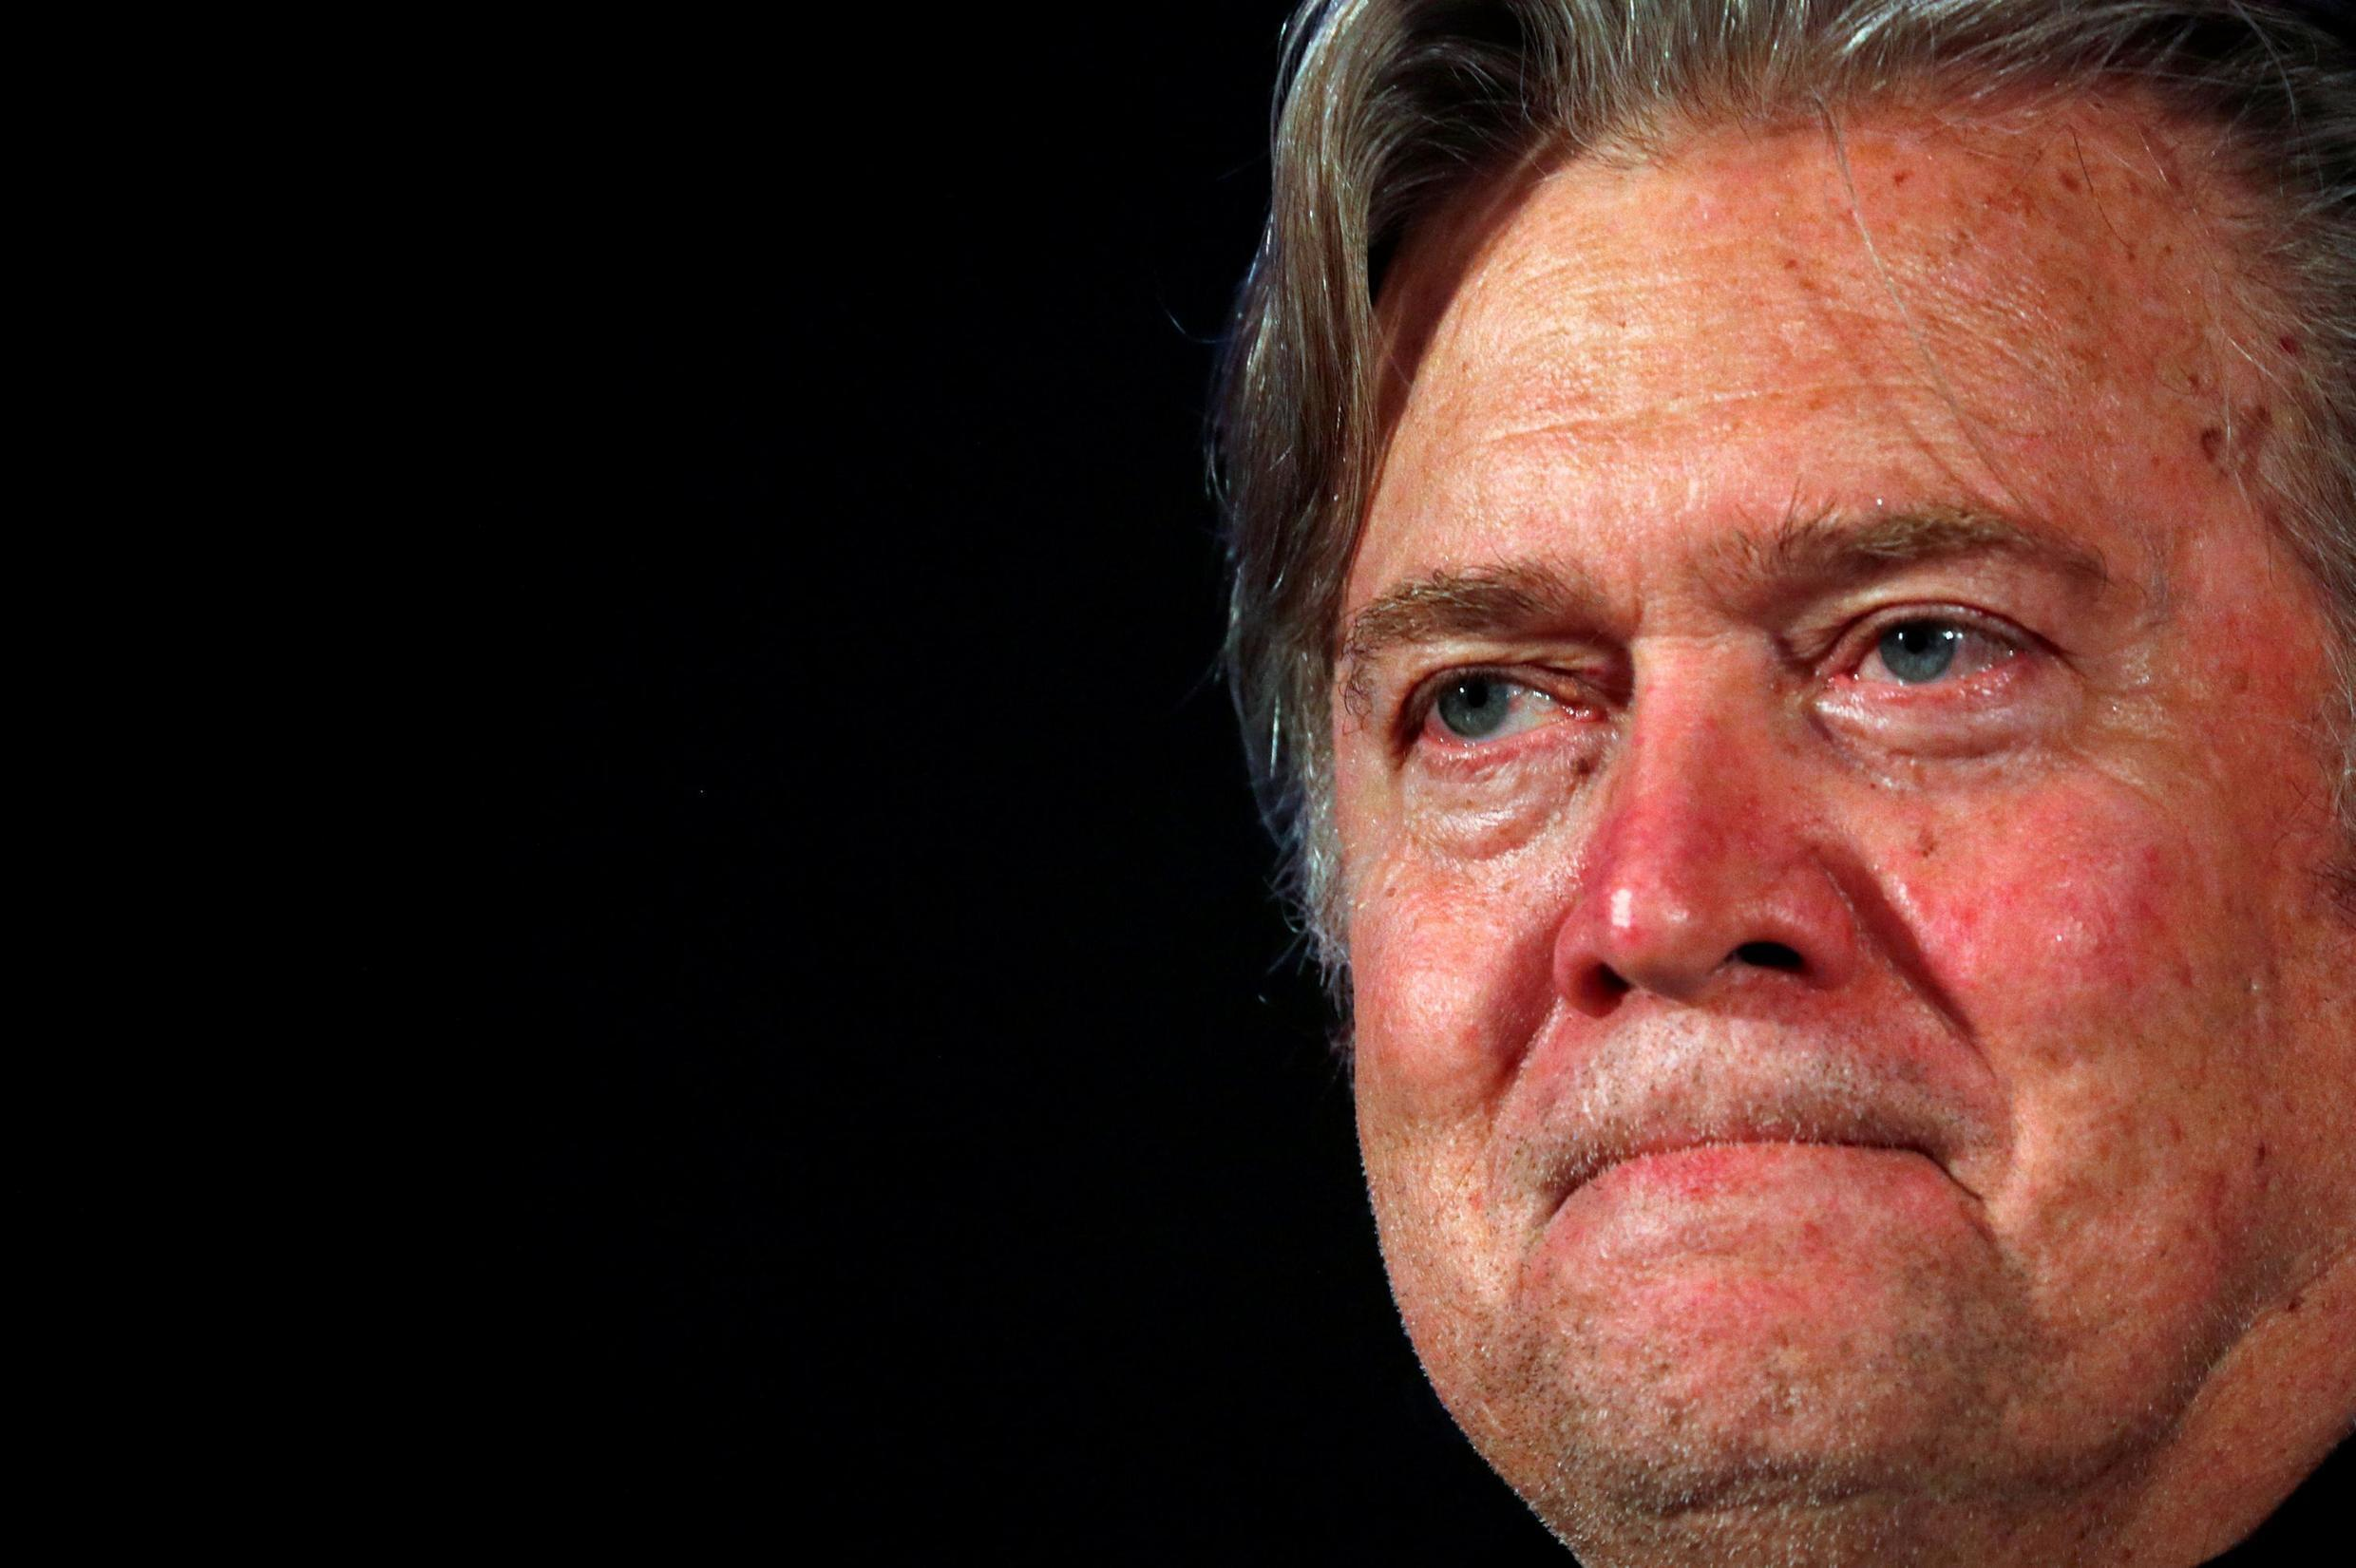 American political strategist Steve Bannon, former advisor to US President Donald Trump, has come to Paris for the European elections and has been praising the campaign of far-right leader Marine Le Pen.